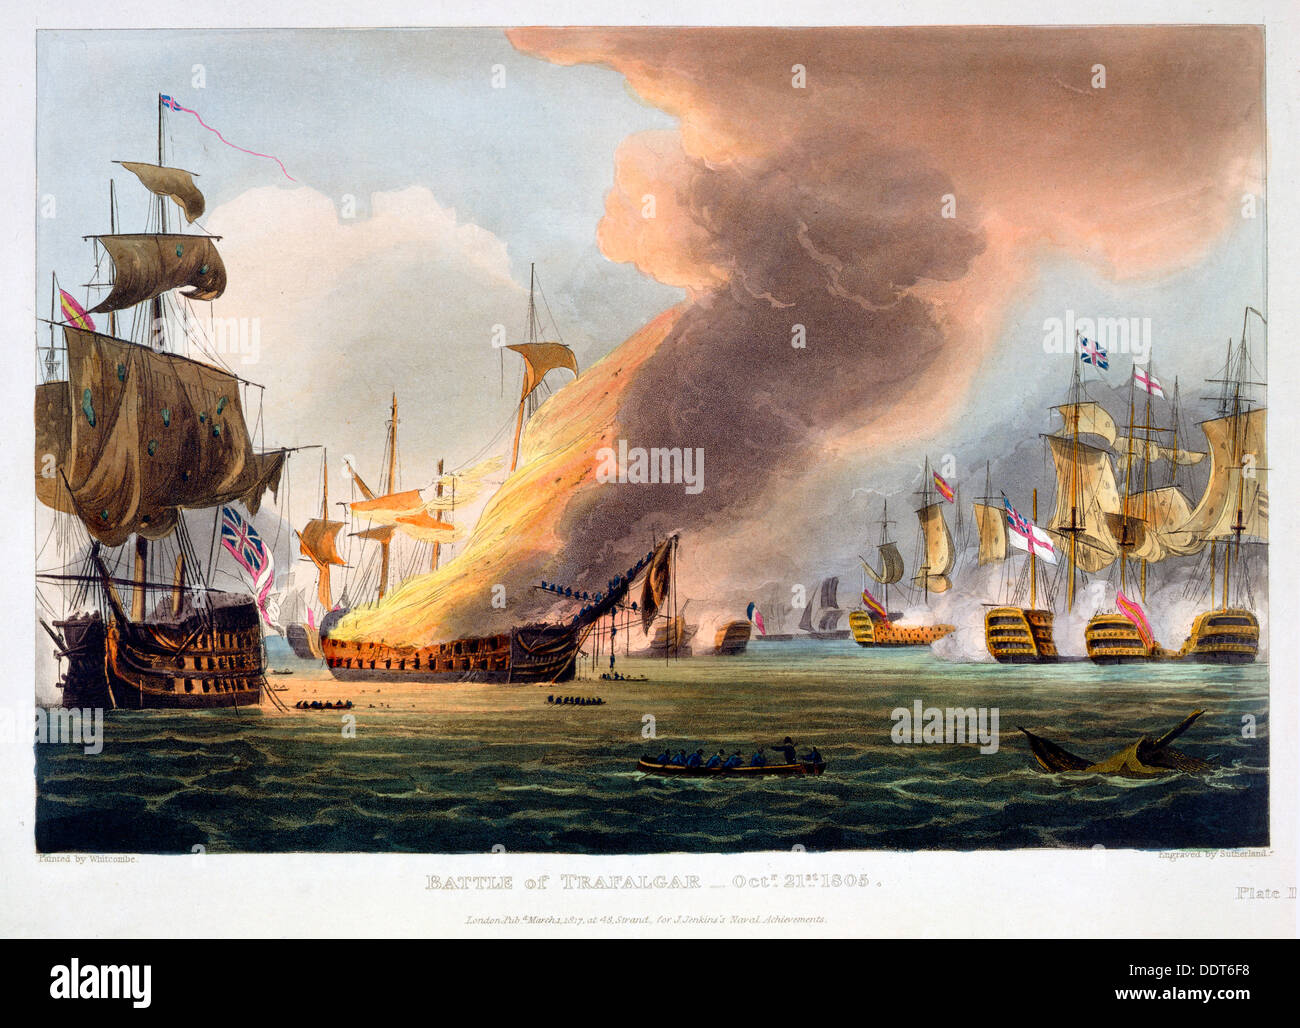 The Battle of Trafalgar, 21st October 1805 (1816). Artist: Thomas Sutherland - Stock Image